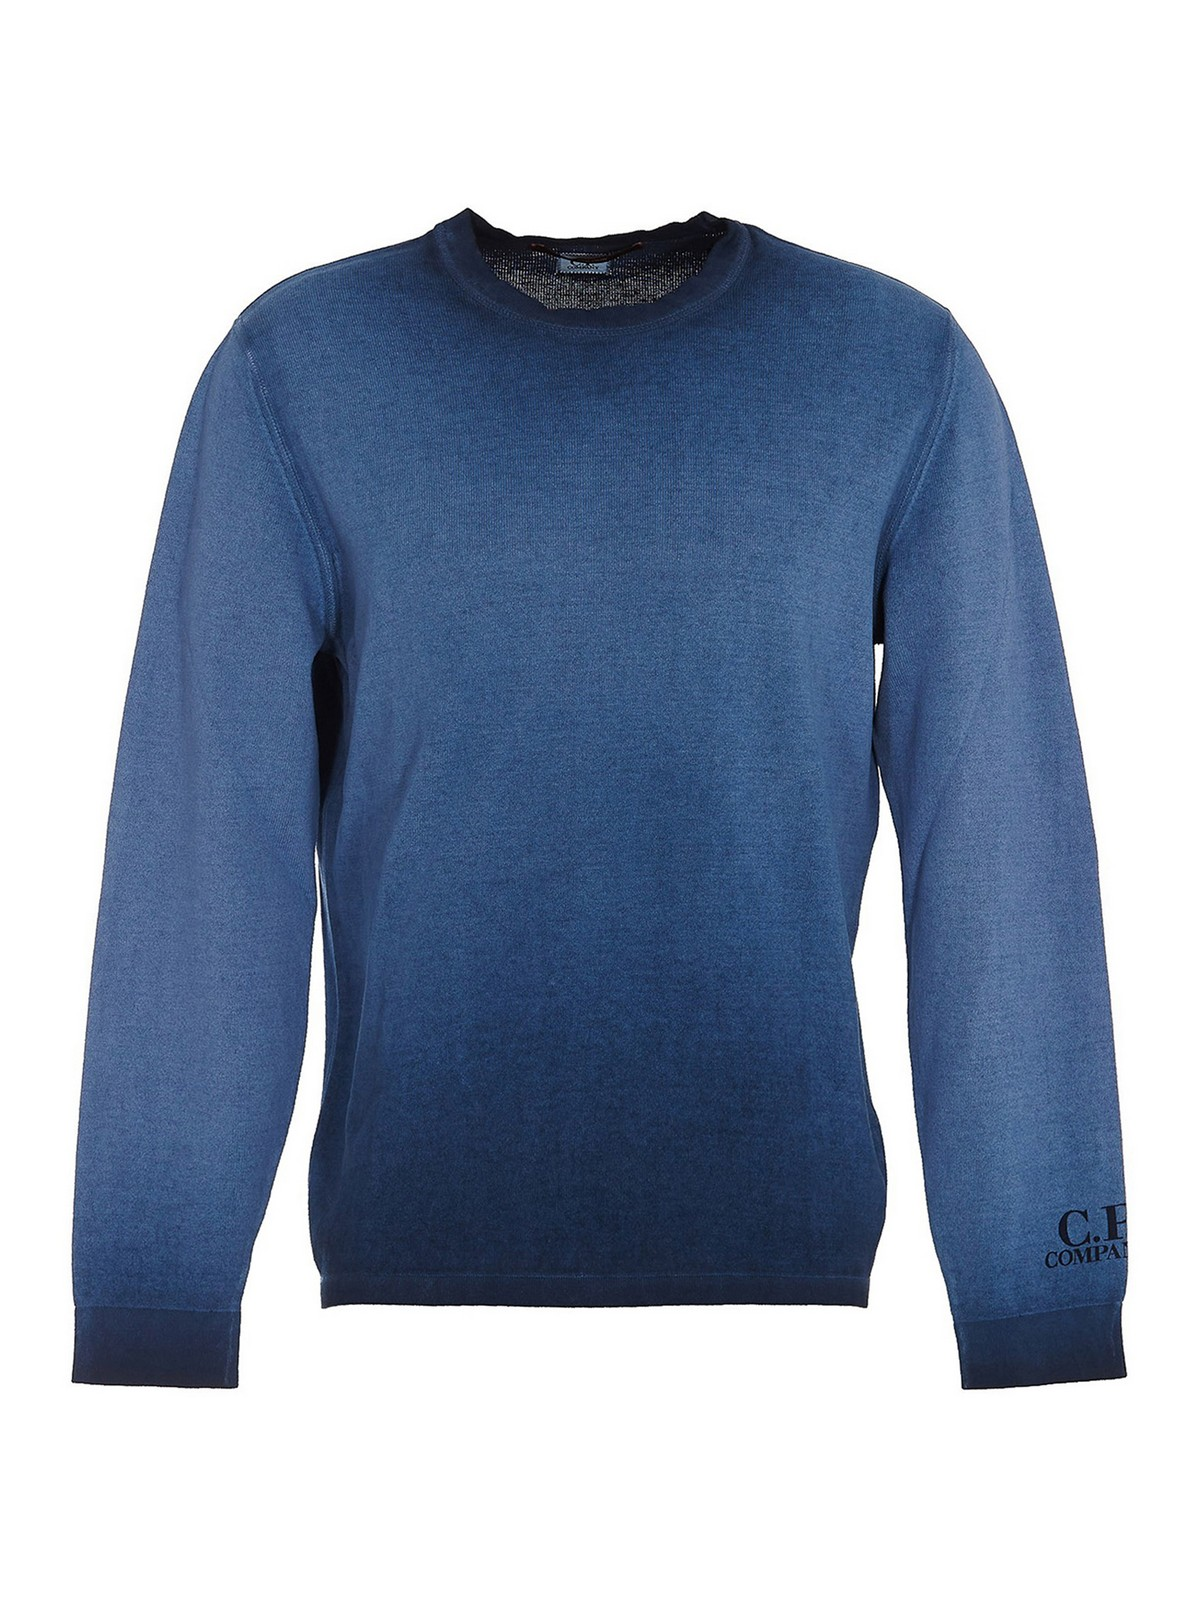 C.p. Company Cottons FADED BLUE SWEATER